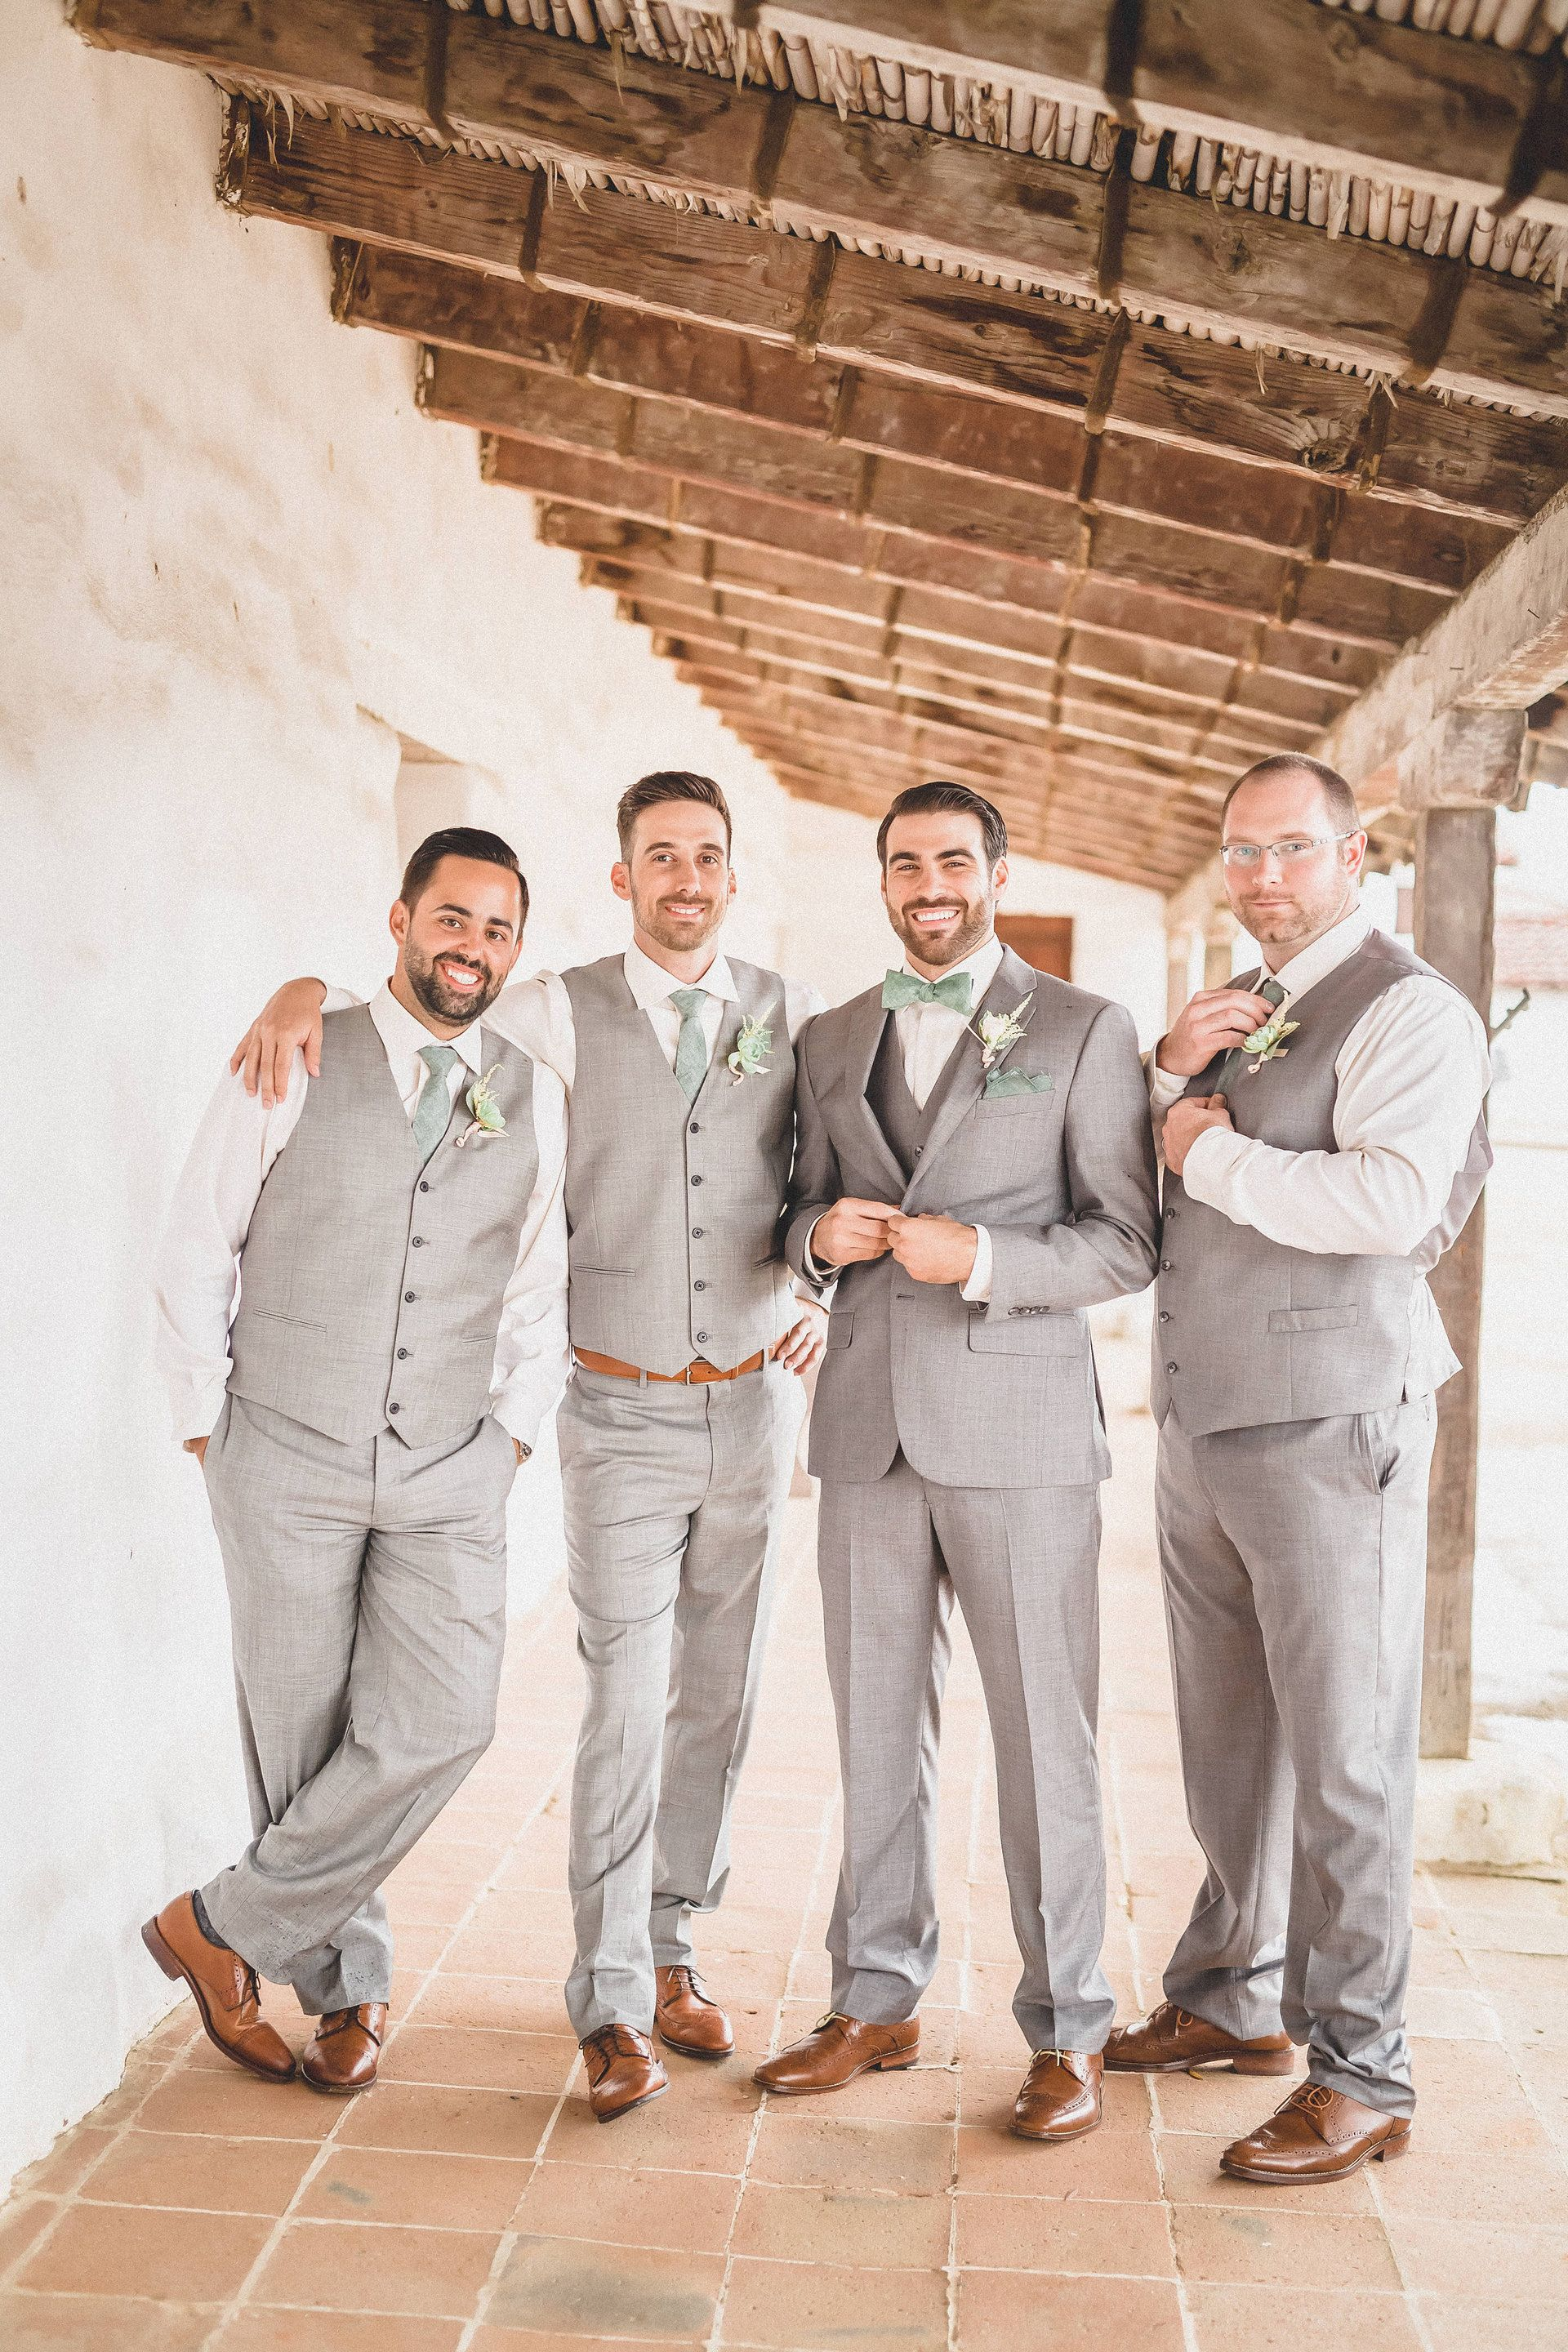 f363f2e09 Brown shoes, light grey suits, sage green ties, groomsmen style, wedding  fashion